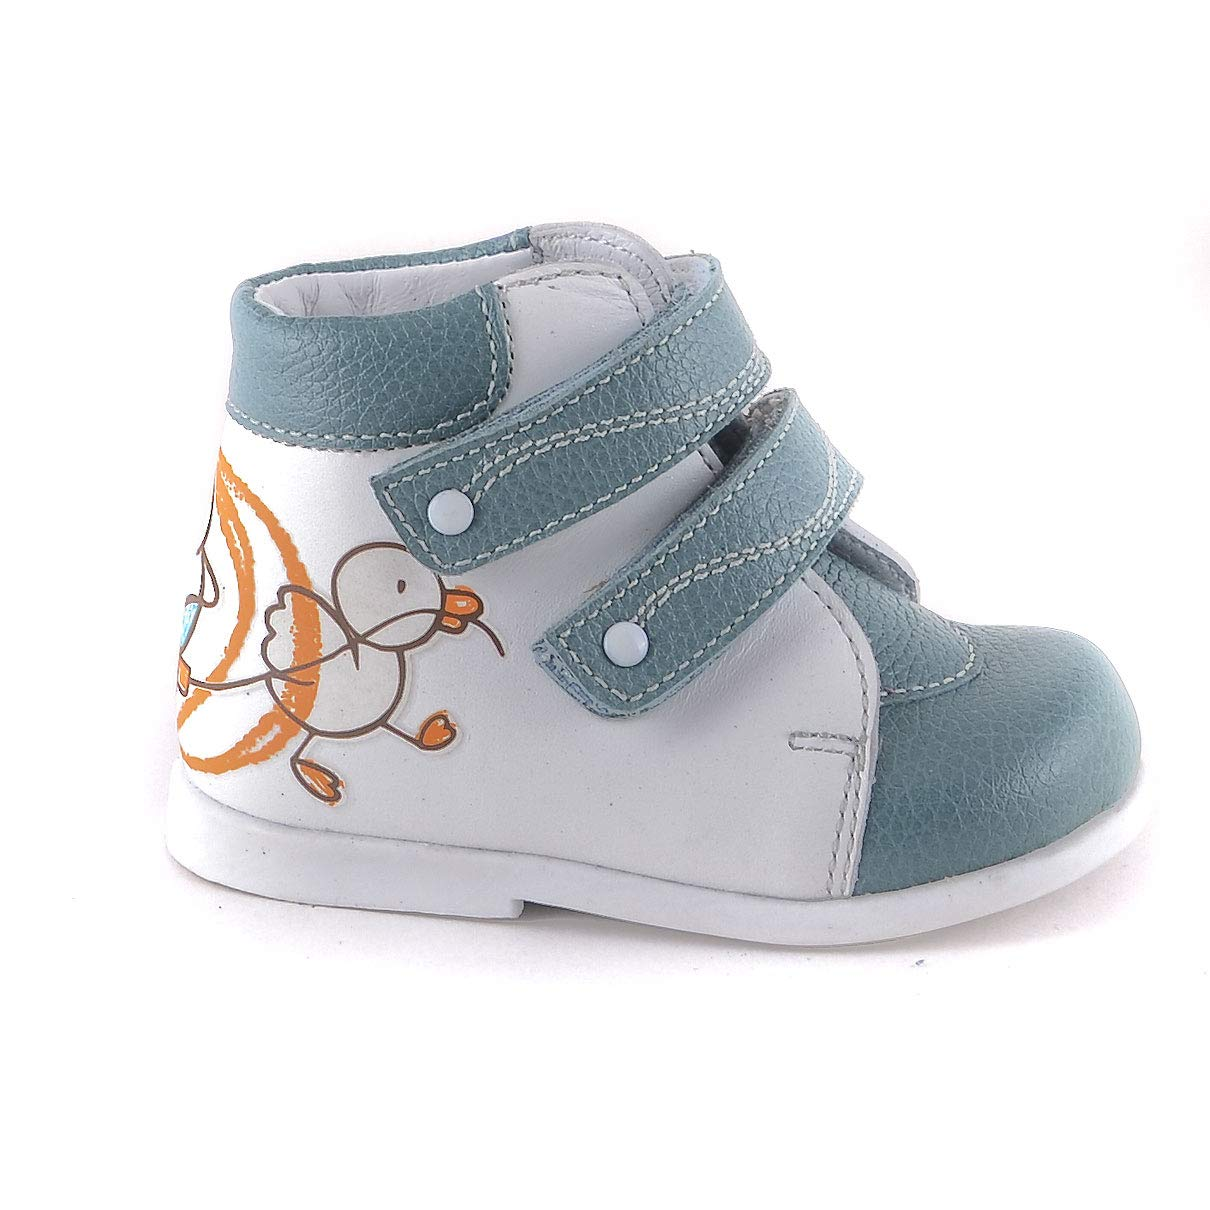 Skorohod Orthopedic Boots First Step for Boys and Girls Genuine Leather 2 Fasteners High Sole